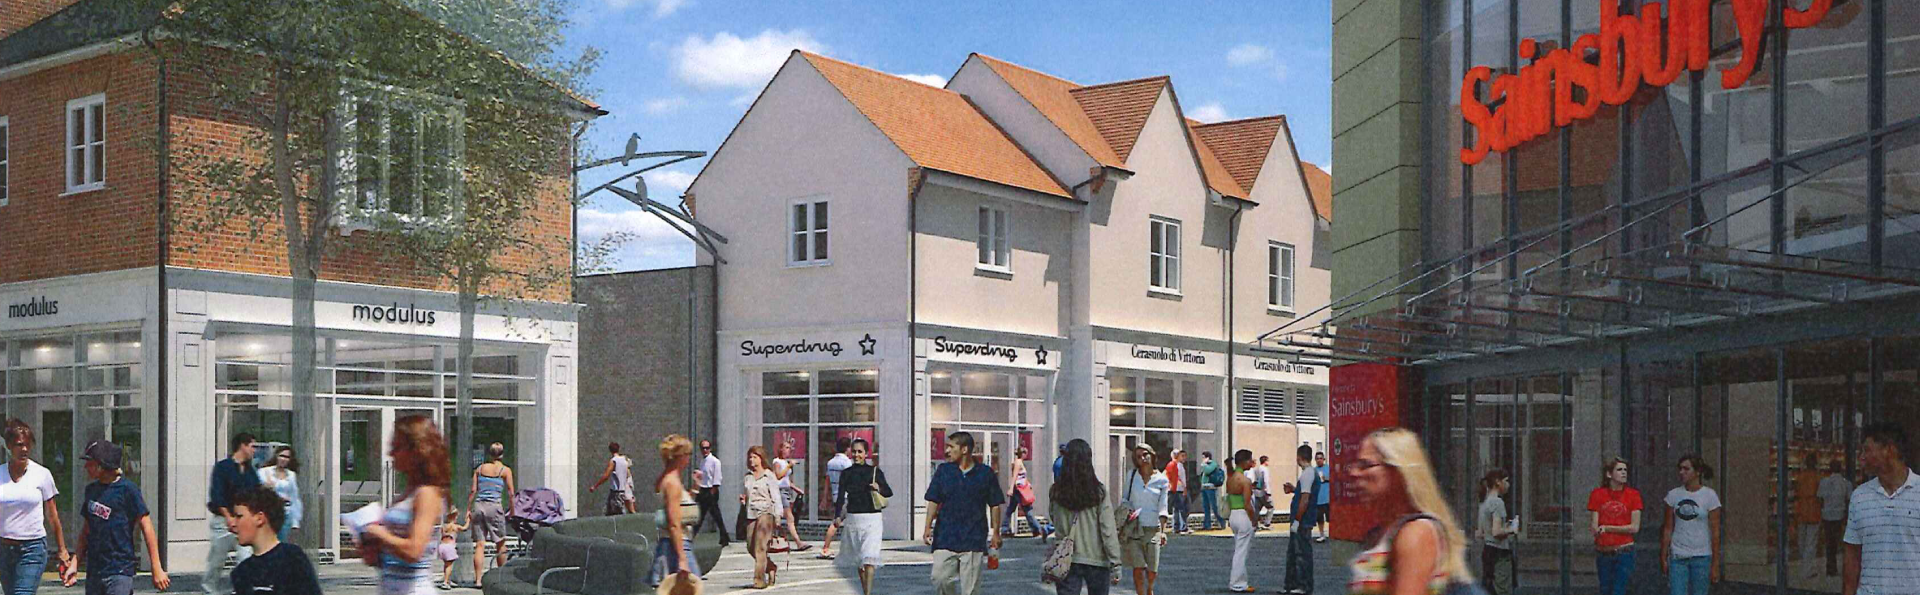 Bicester Town Centre Development by Ziran Land